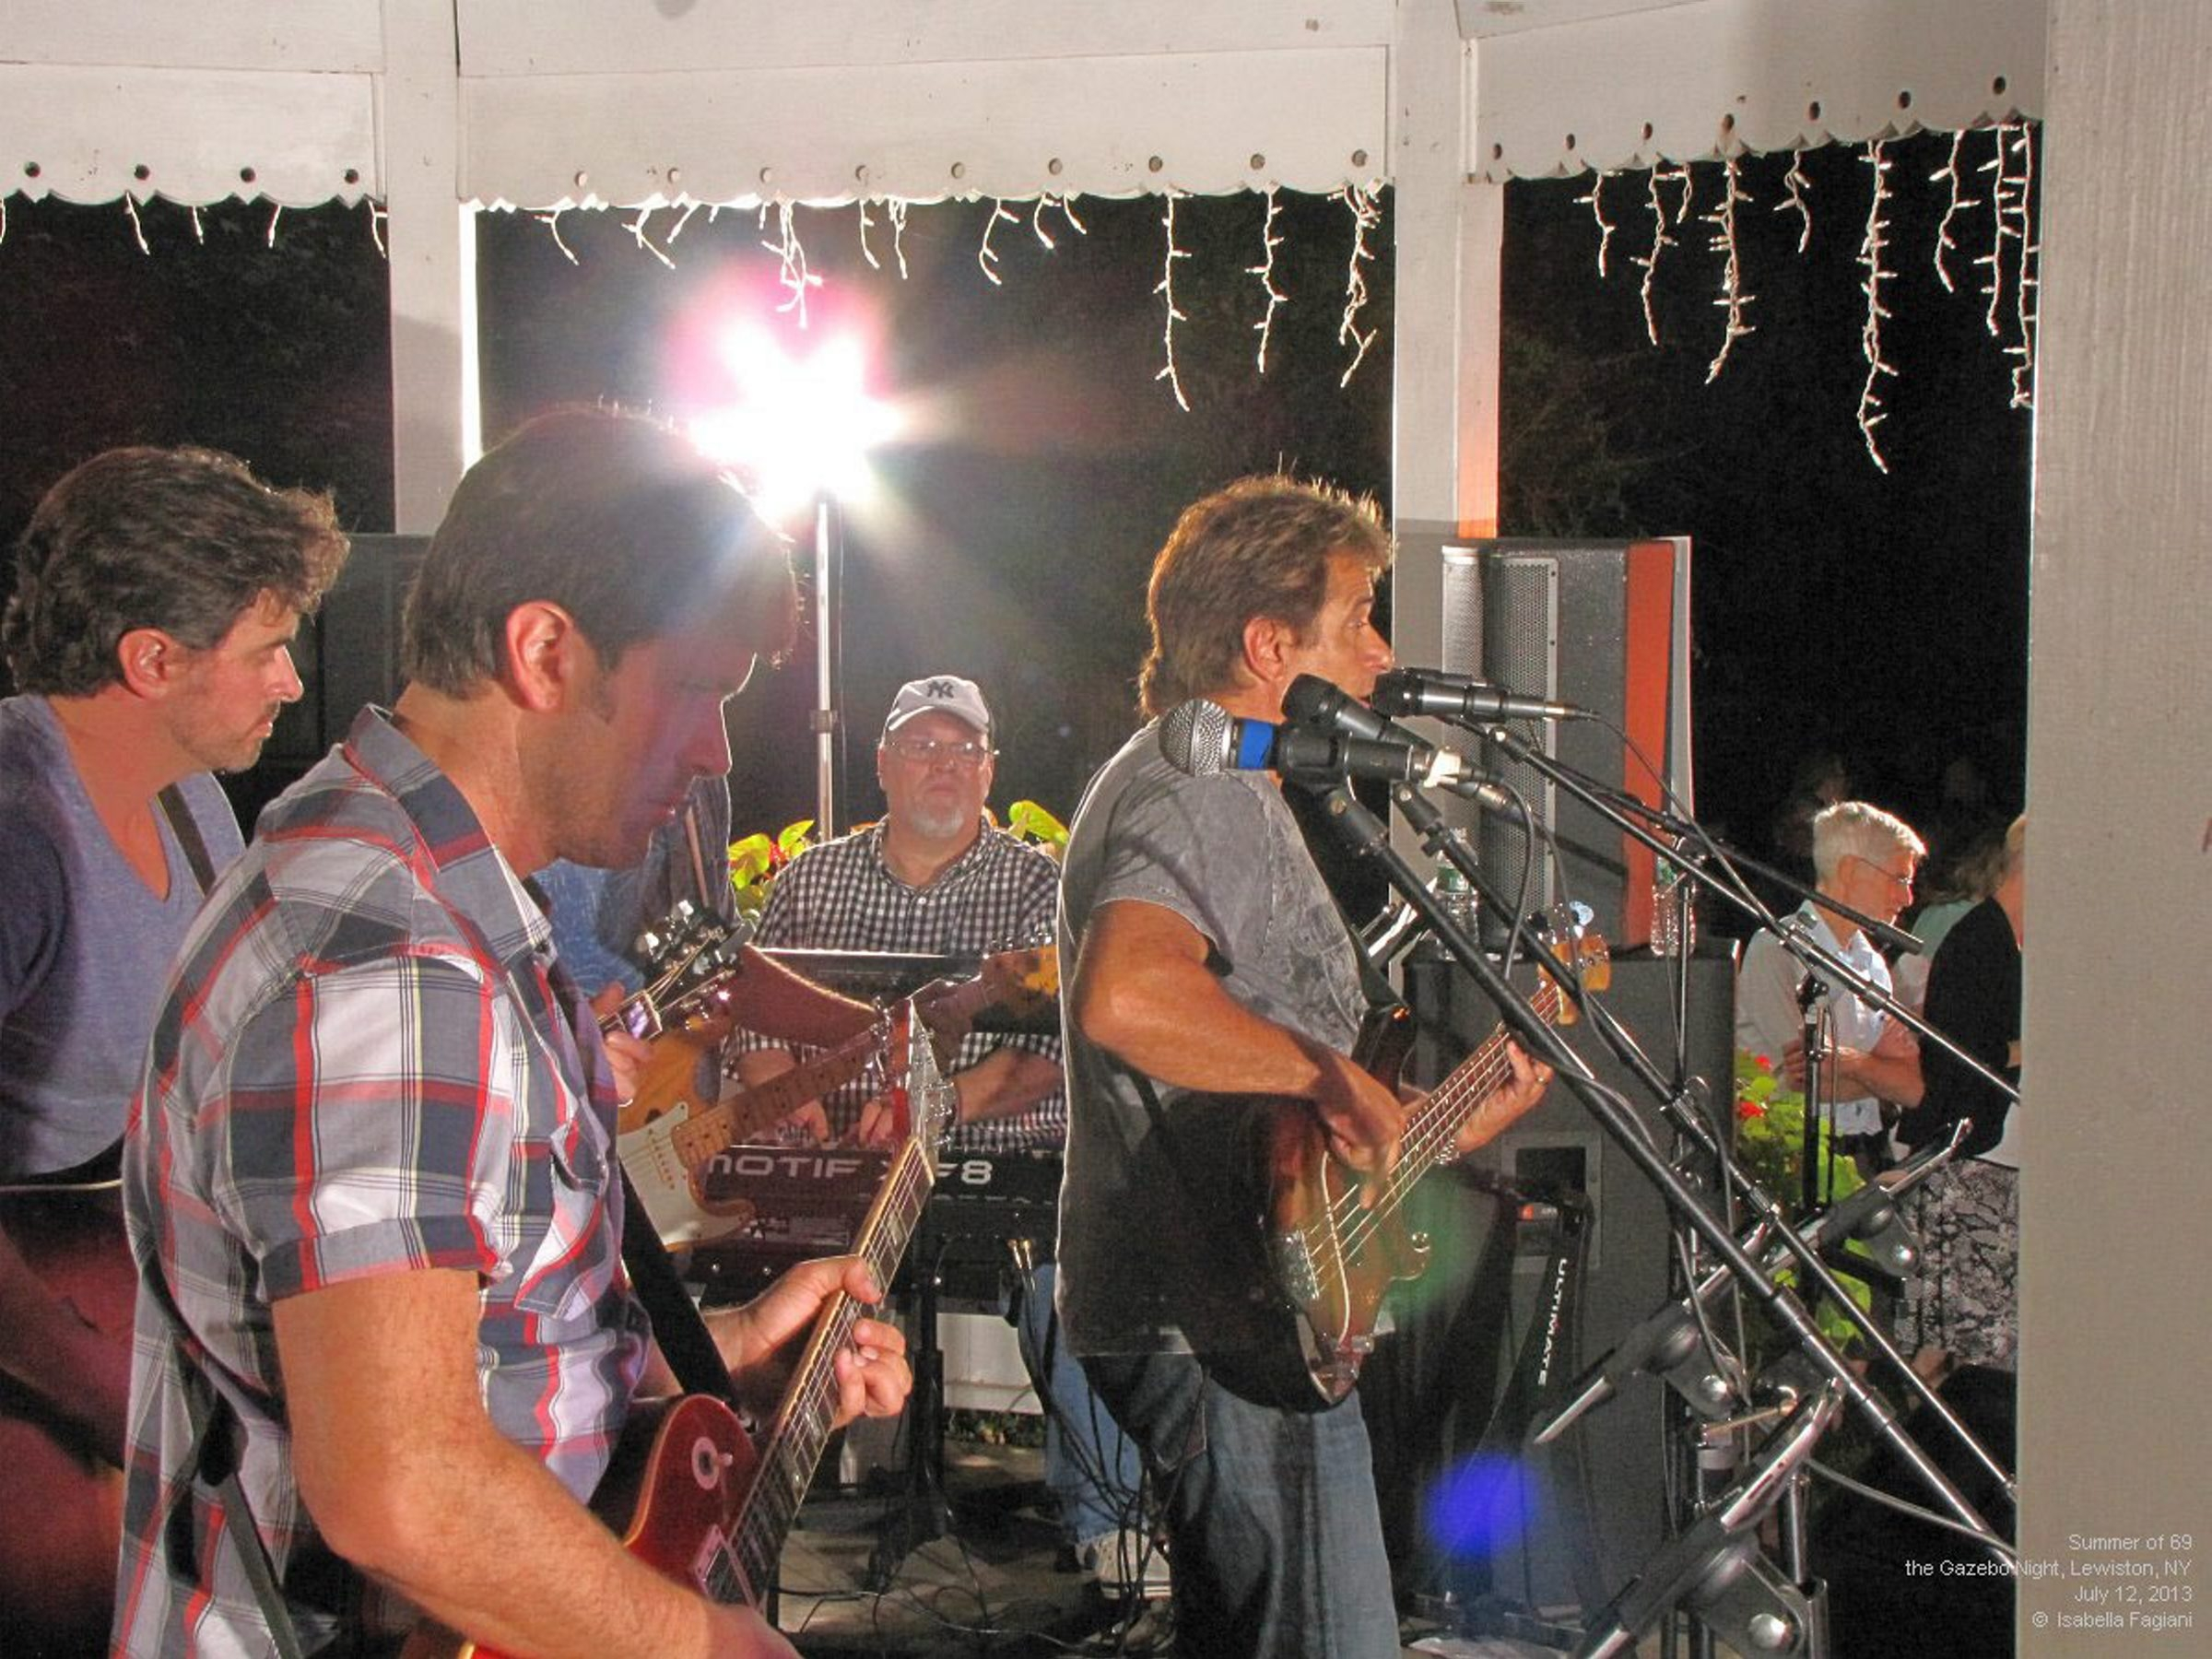 This is Summer of  '69 photo of the Gary Baker Band from last year submitted by Isabella Fagiani. This year's version of the reunion runs July 10-12.